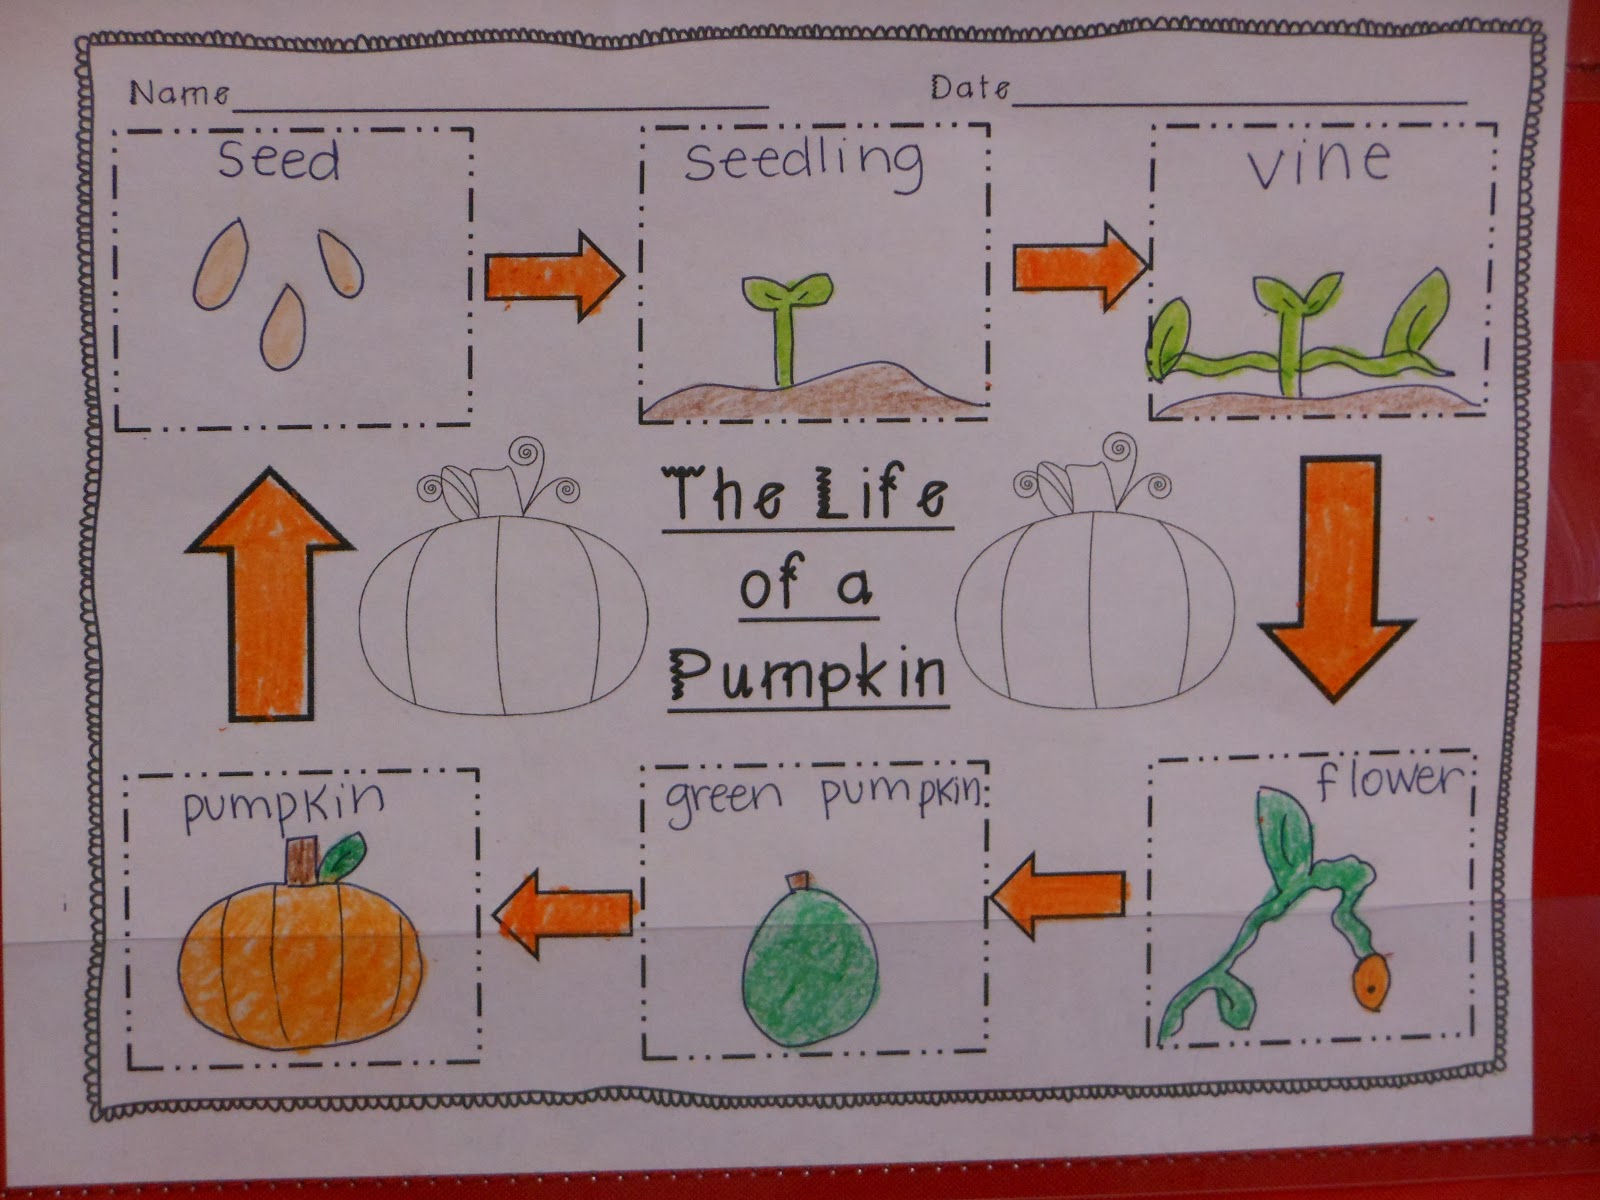 for the love of first grade: the great pumpkin investigation pumpkin life cycle diagram of